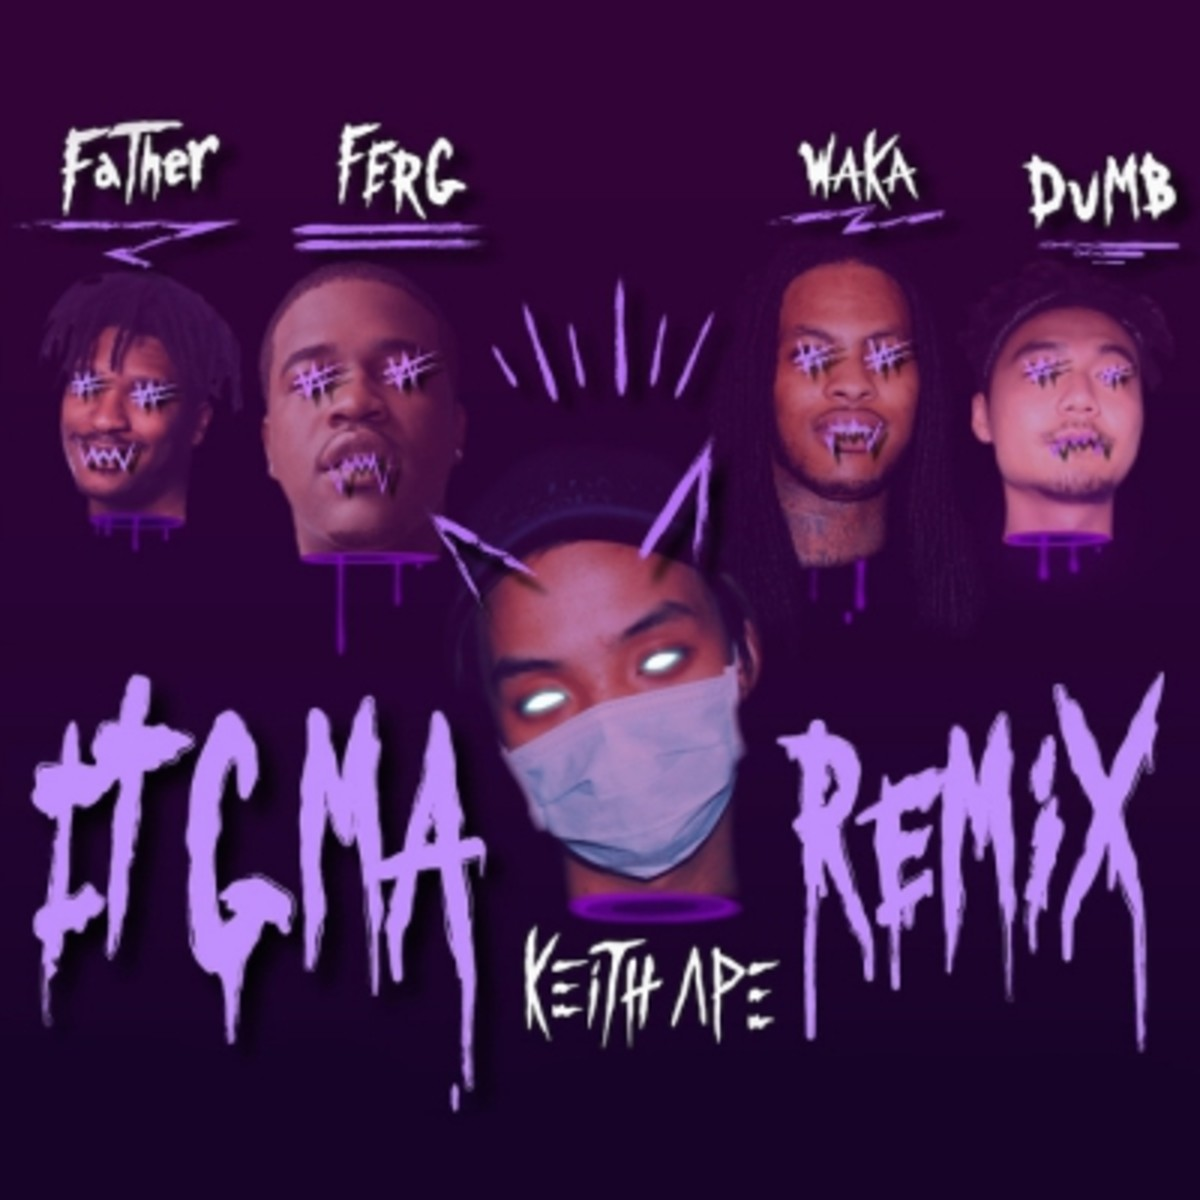 keith-ape-it-g-ma-remix.jpg